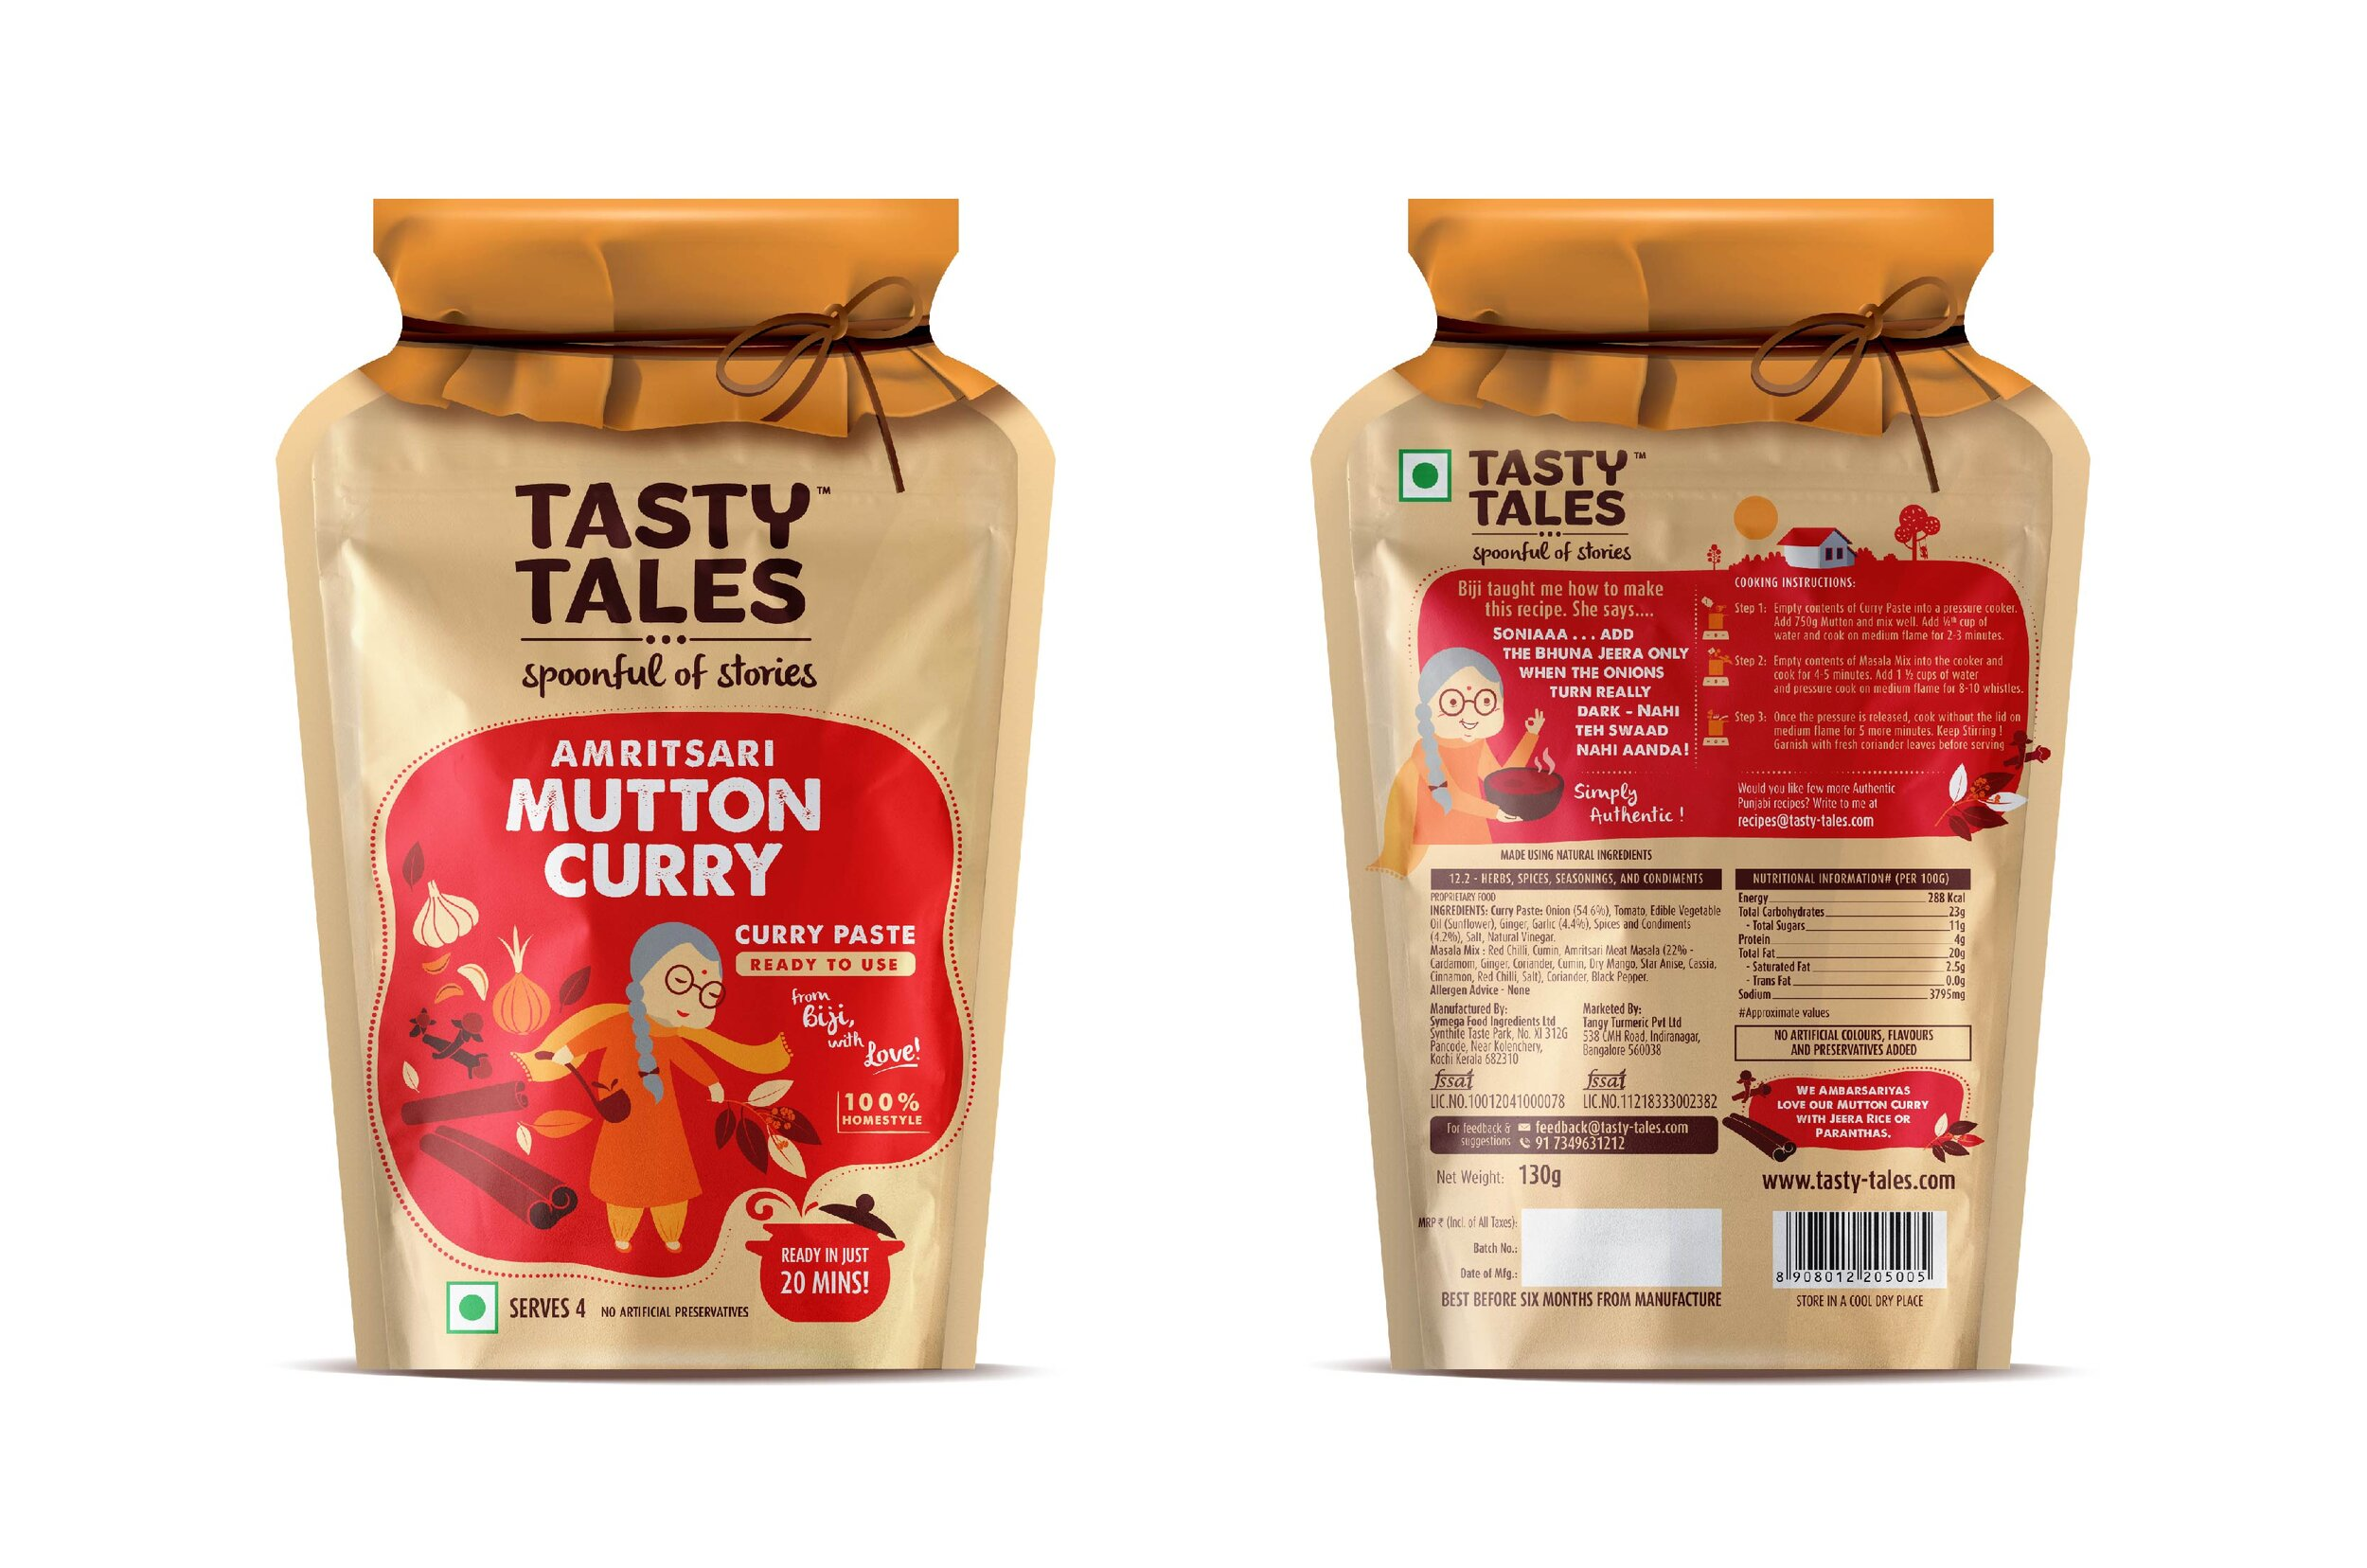 Tasty Tales_Packaging_Elephant Design 10.jpg